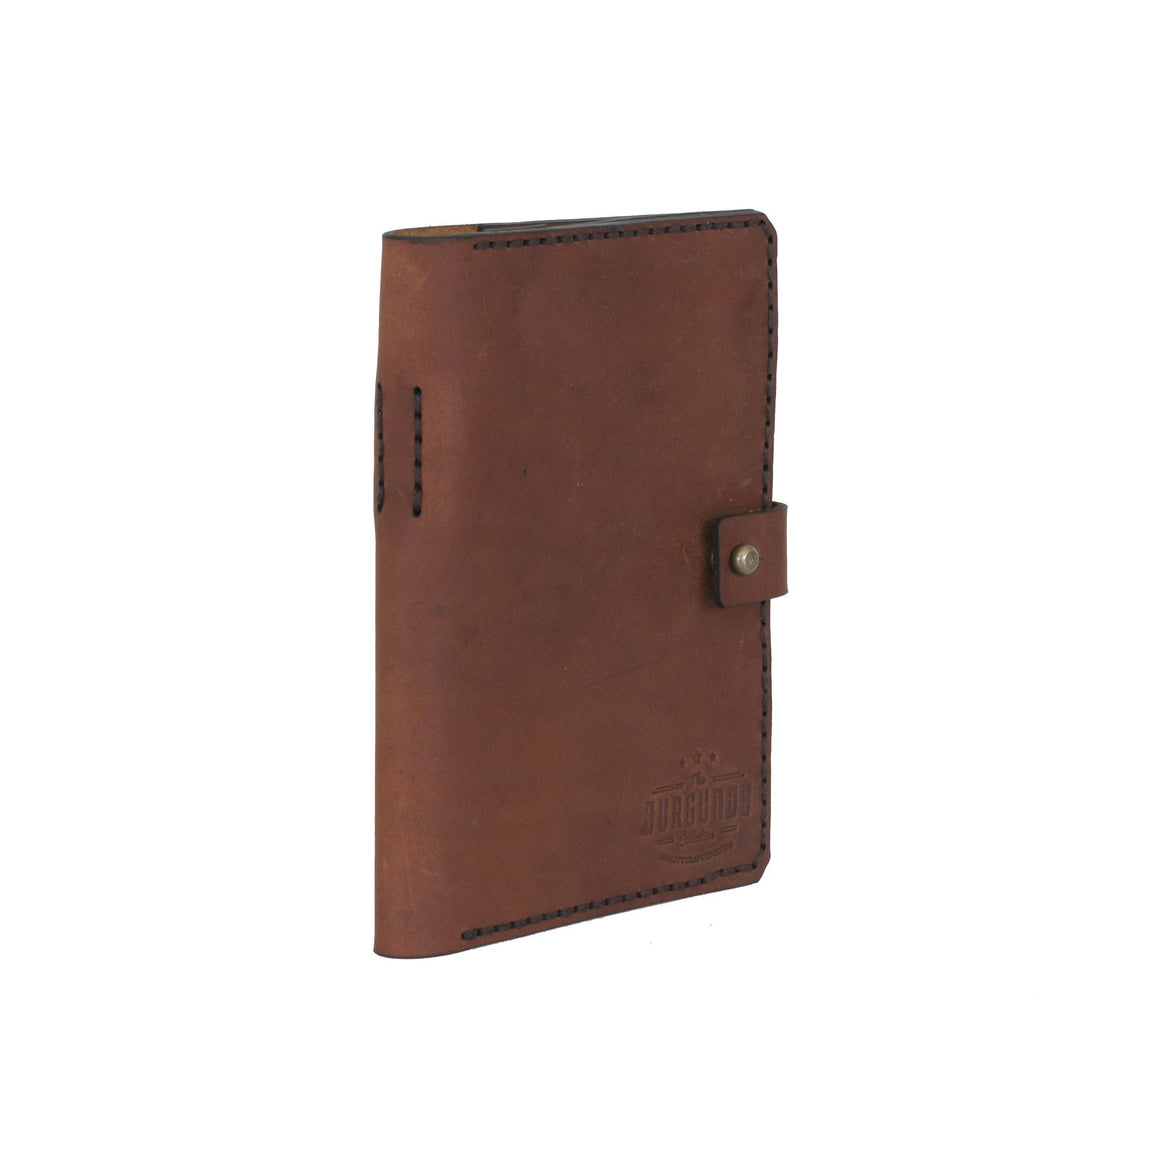 Burgundy Collective Leather Travel Journal Book Handcrafted in Stellenbosch South Africa. Travel Outdoor adventure Business Fashion Trend in Johannesburg, Cape Town, Durban.